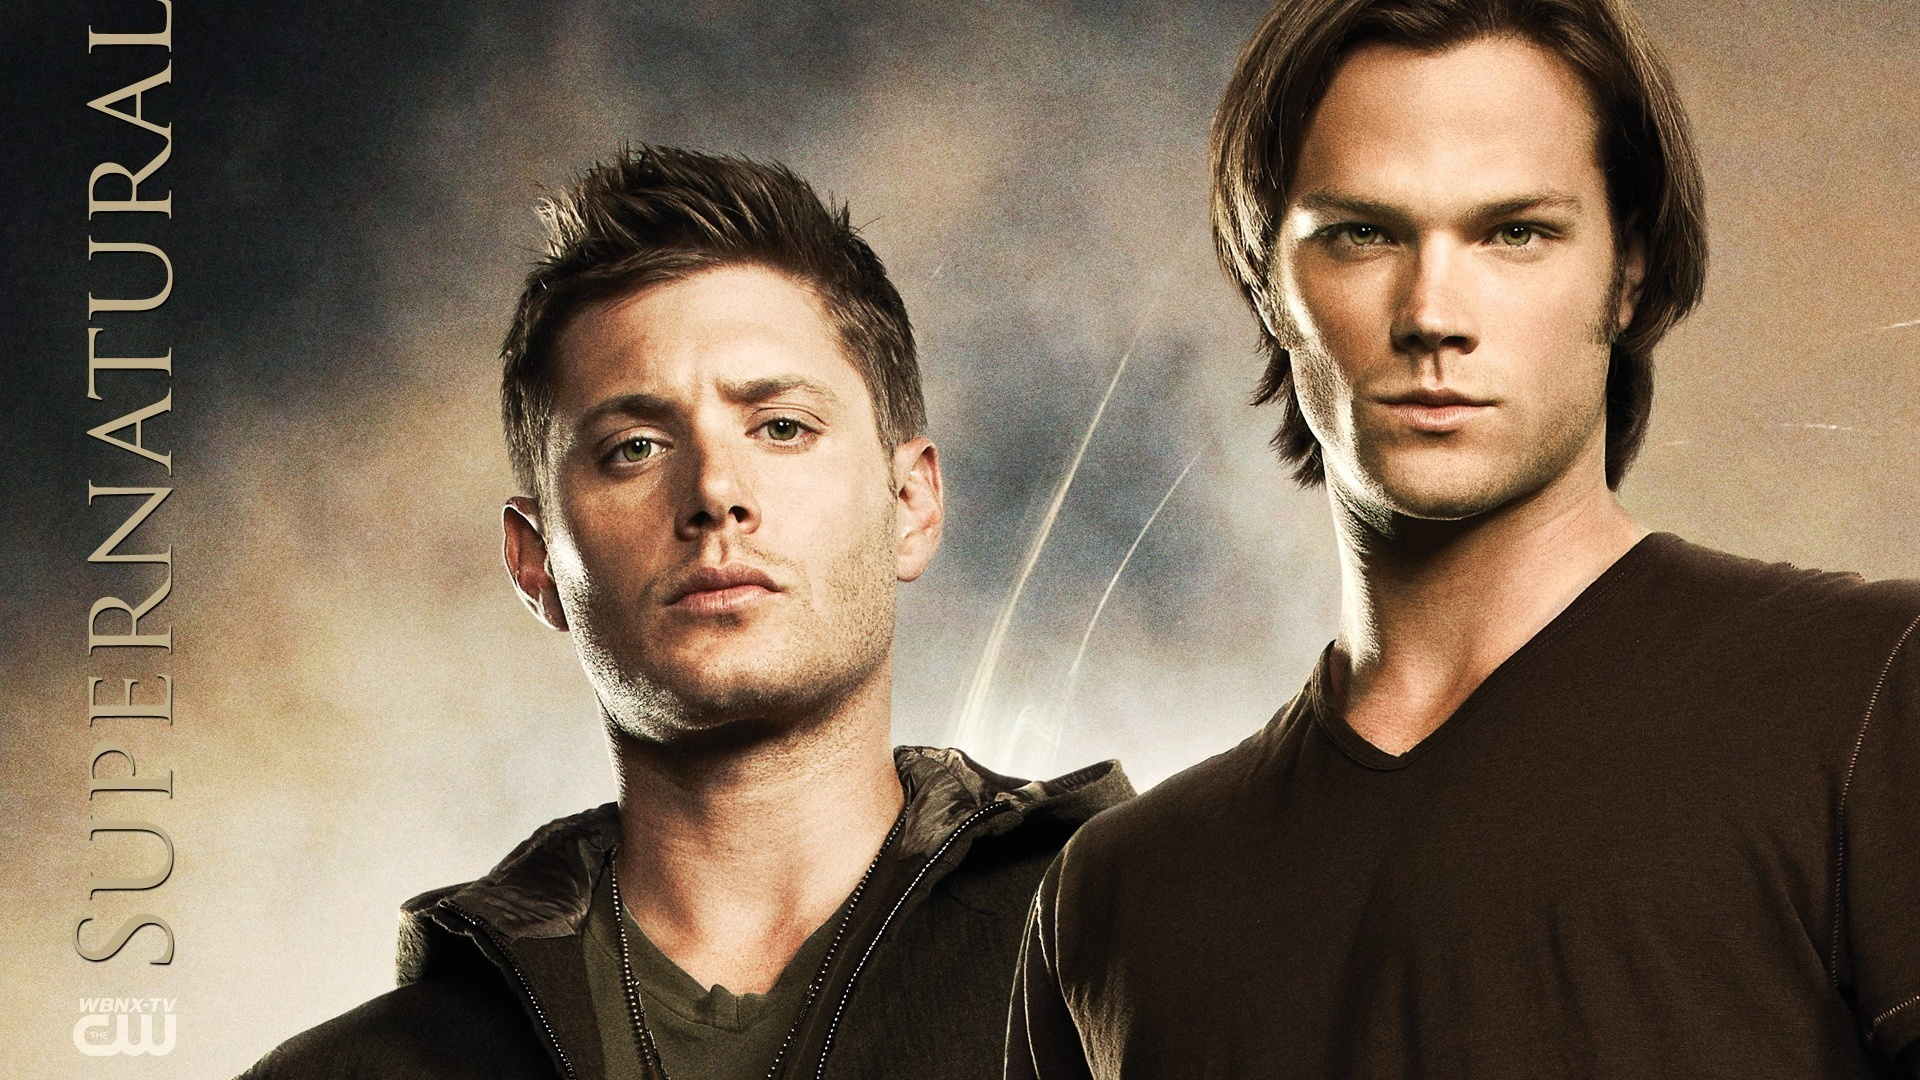 Wallpaper 2012 Supernatural 1920x1200 Hd Picture Image